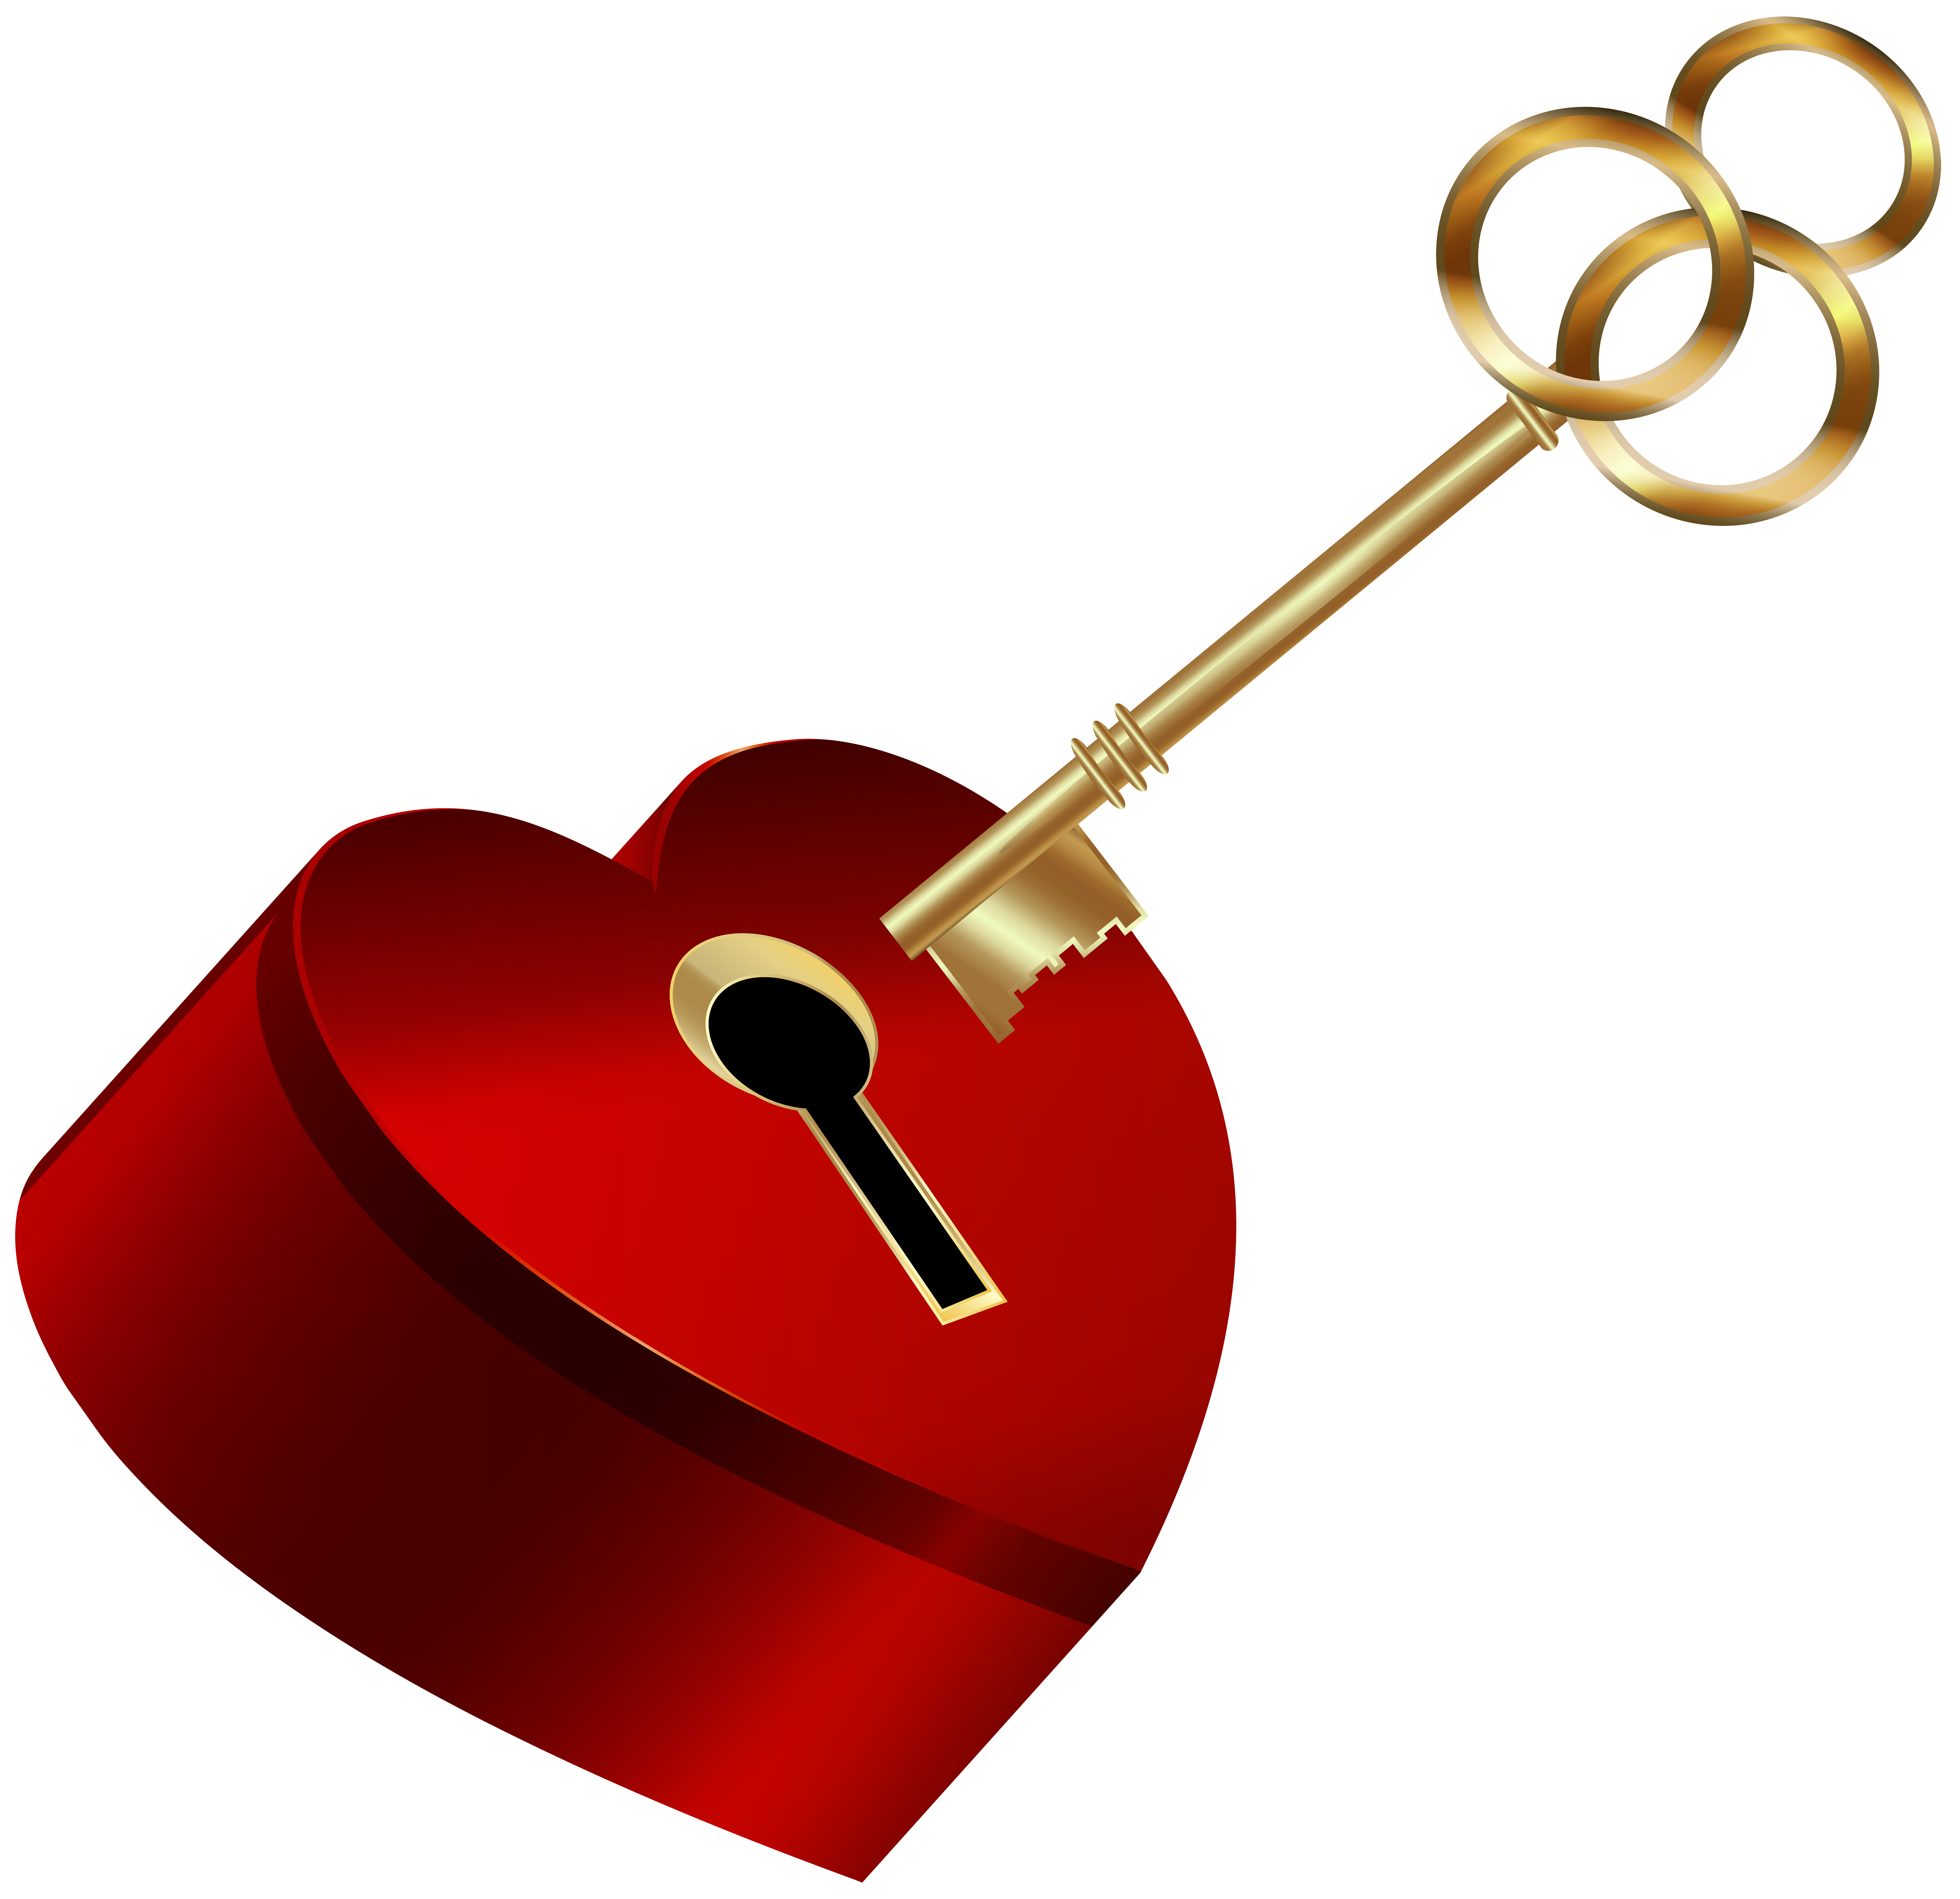 Heart with key png. Keys clipart happy